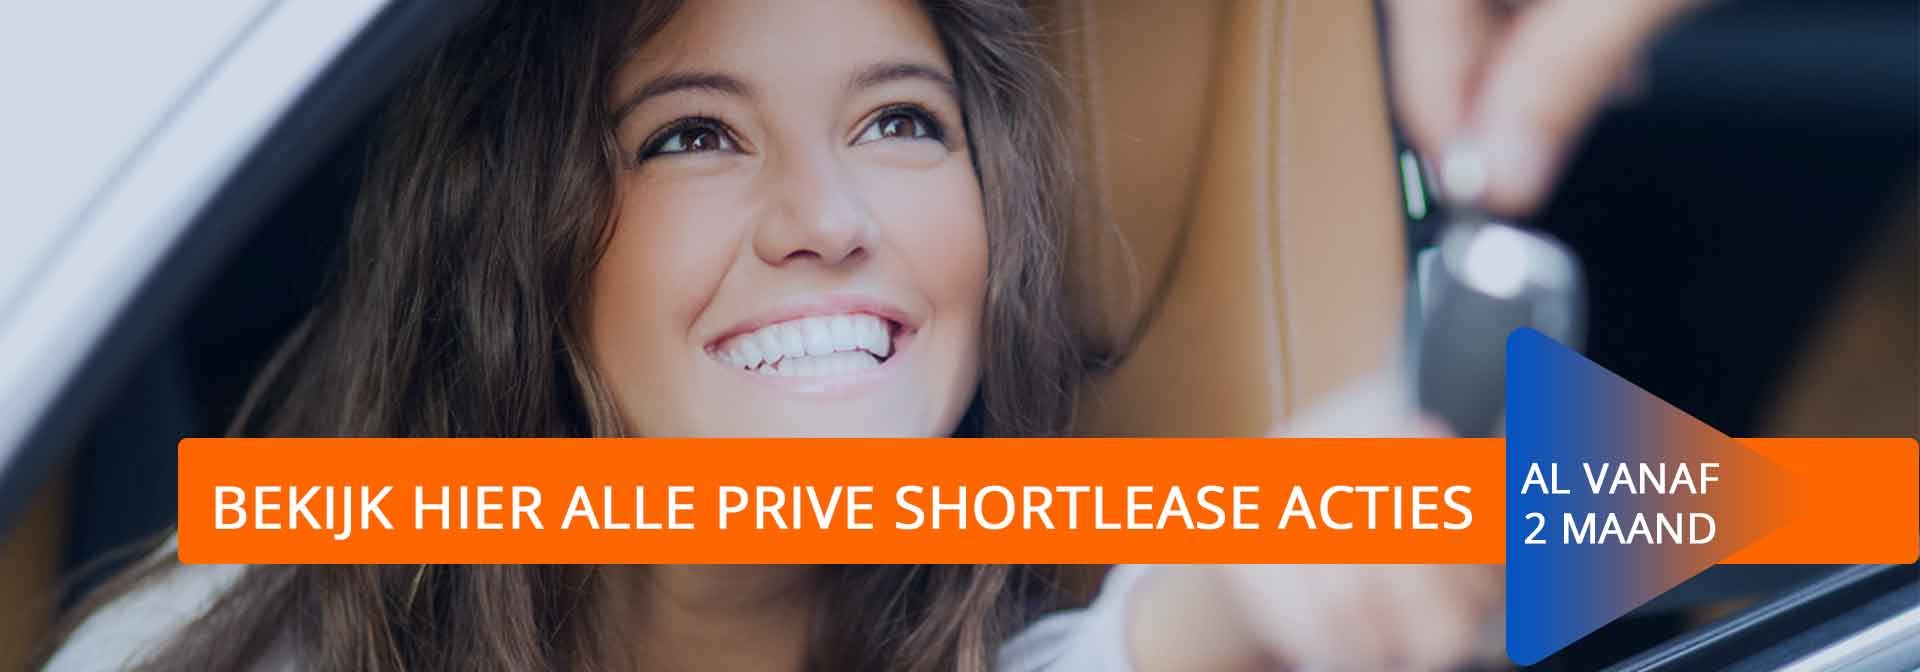 Shortlease prive acties